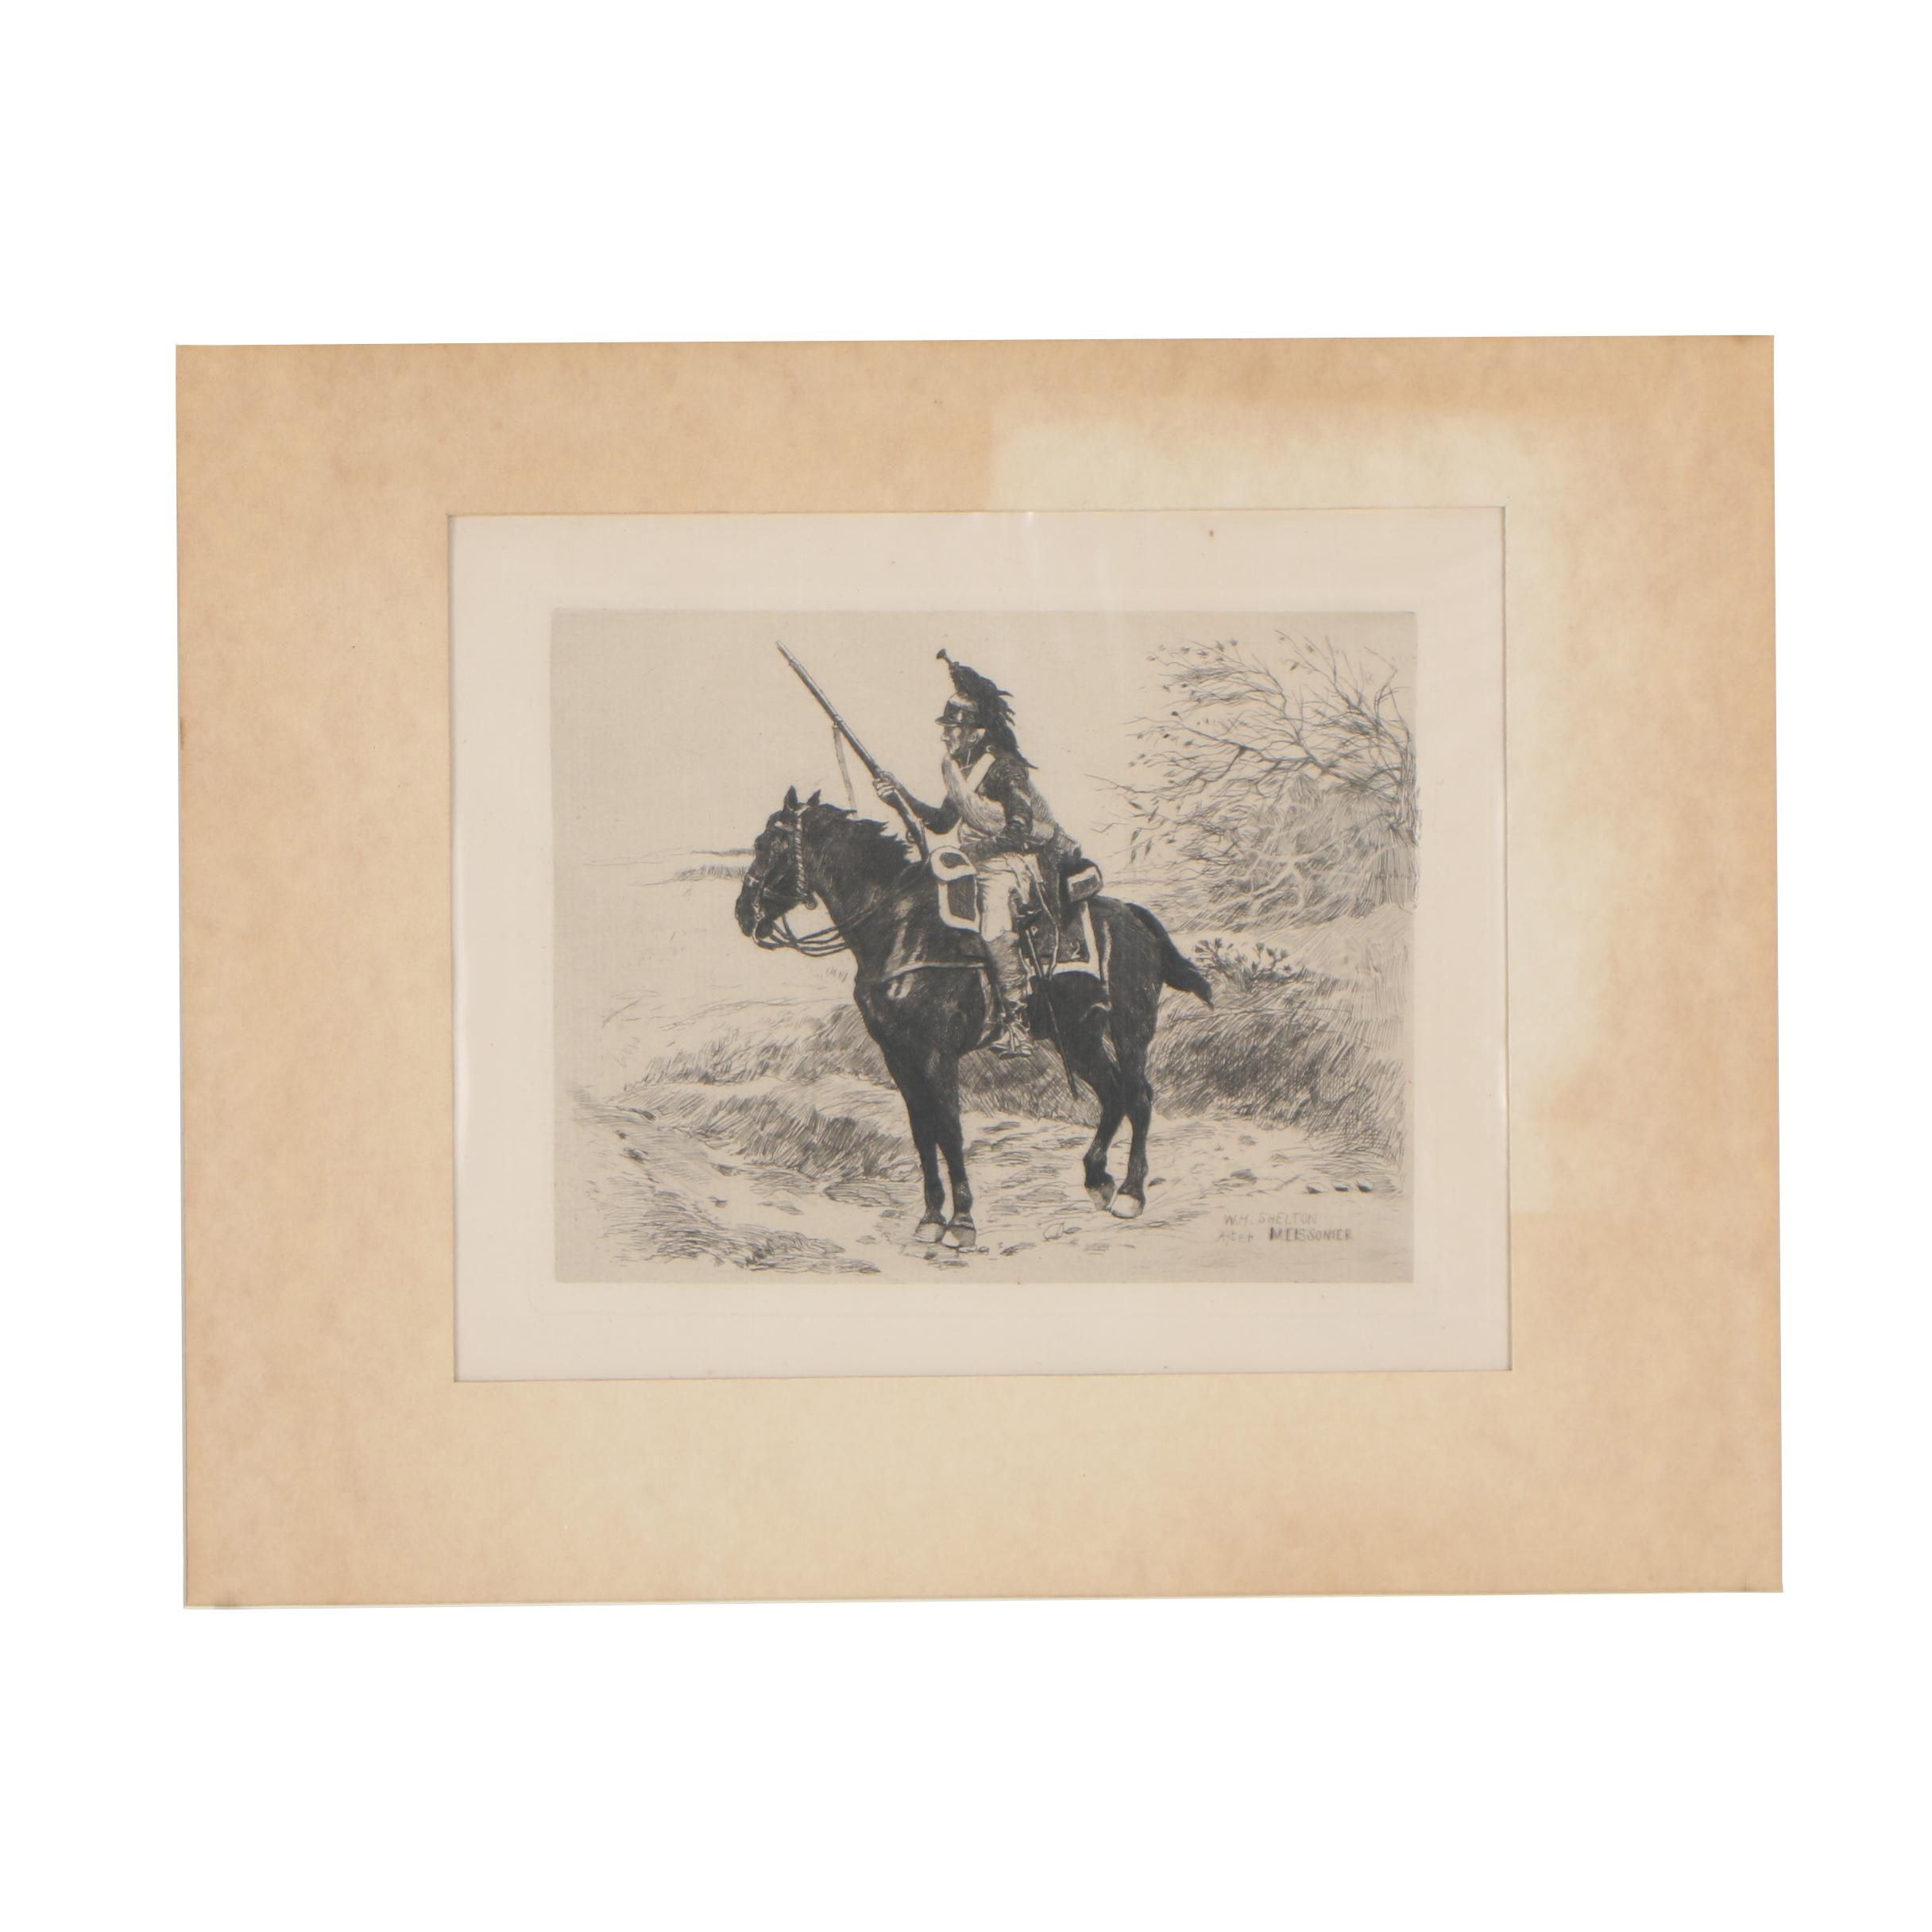 William H. Shelton Etching after Ernest Meissonier of Mounted Dragoon